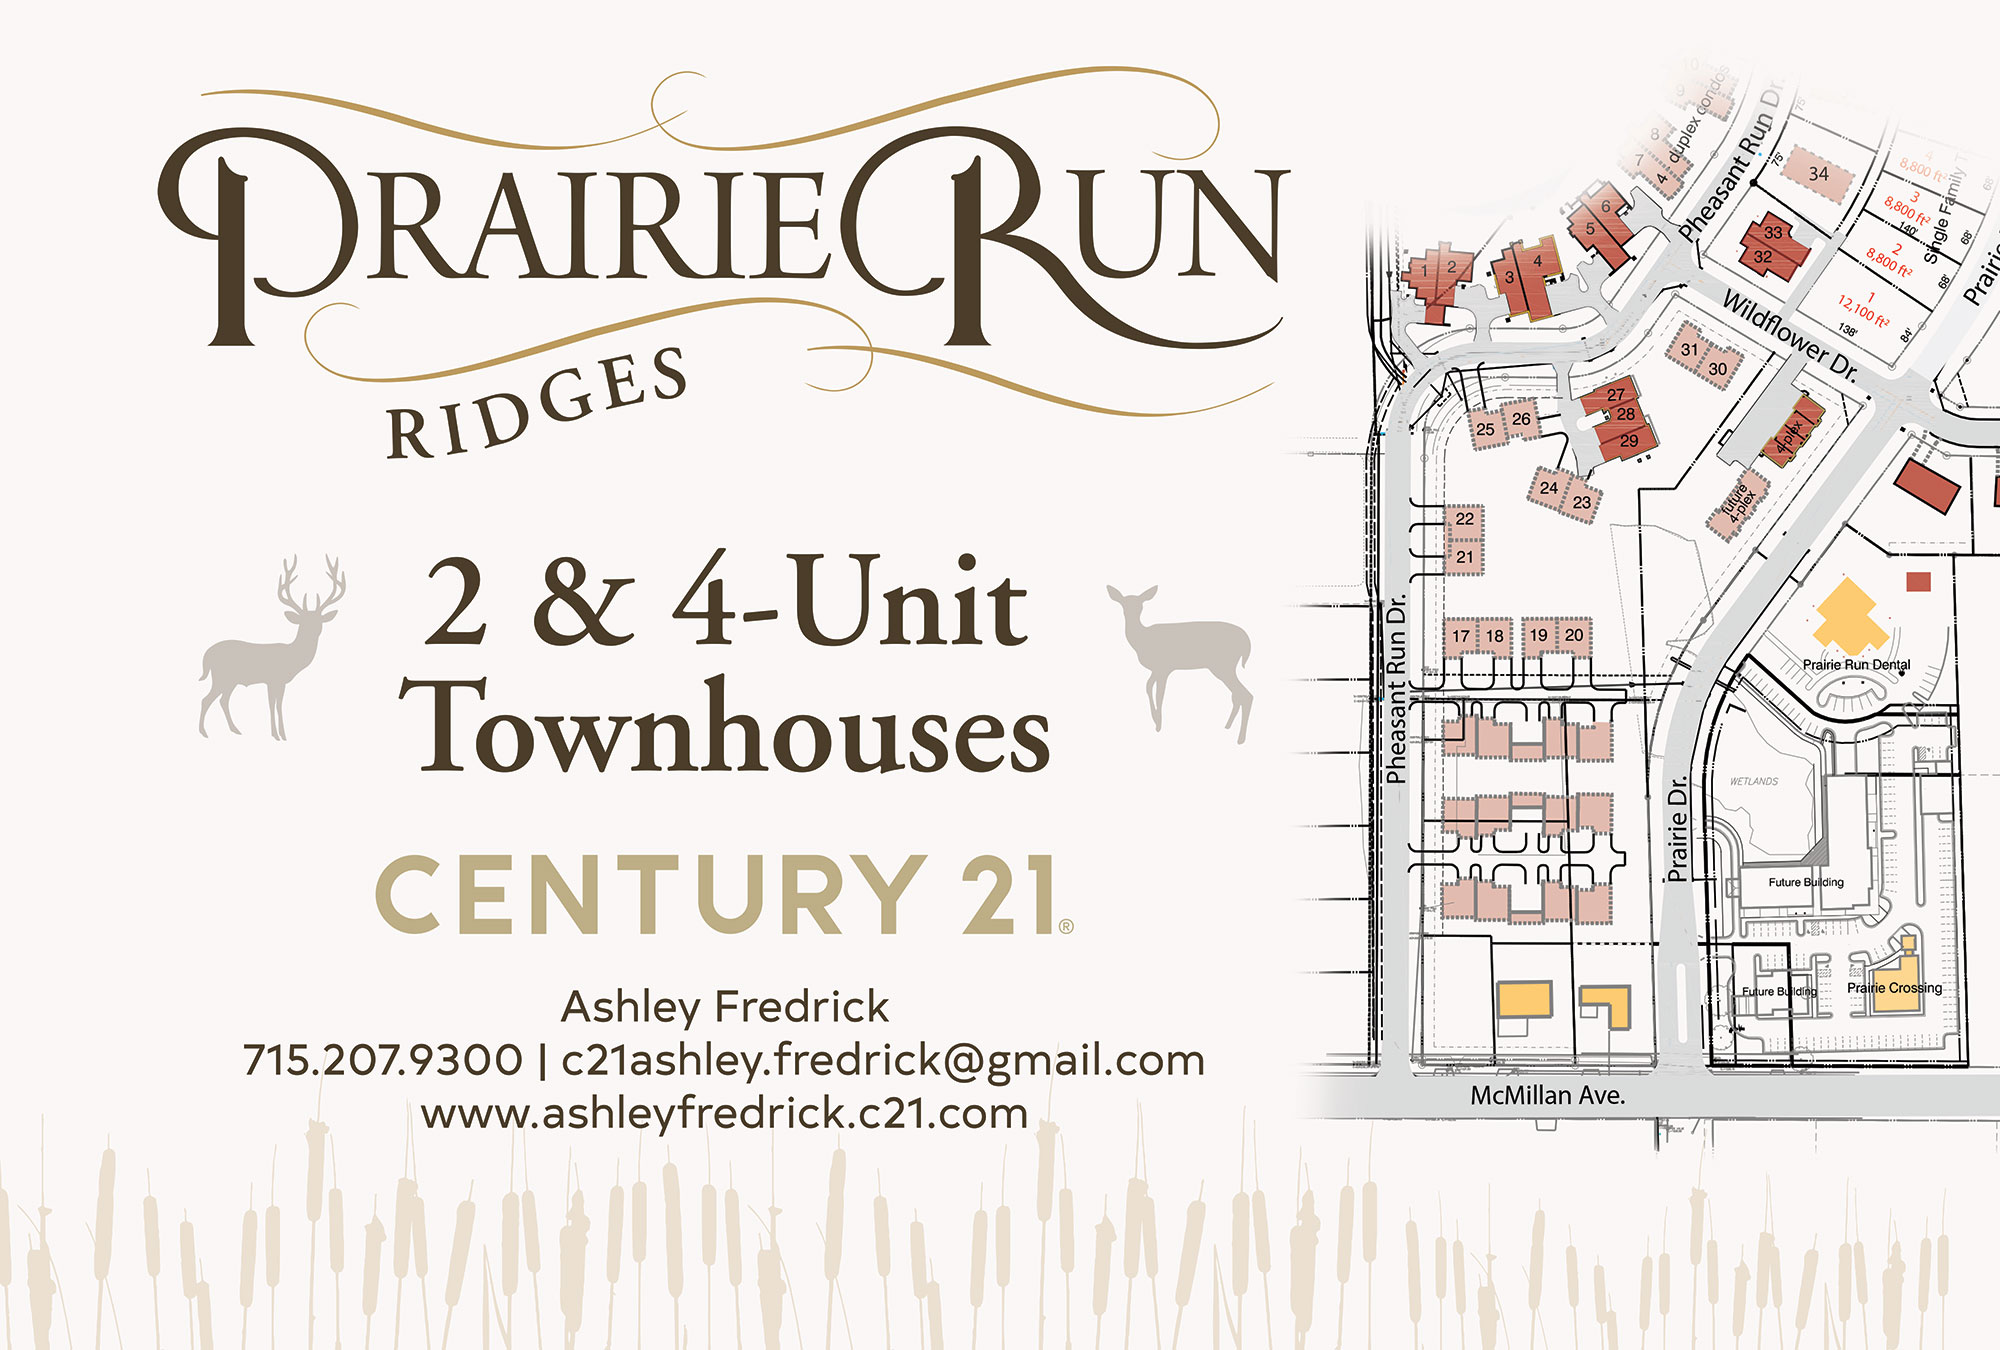 Prairie Run Ridges existing infrastructure and lot map. Two- and four-unit townhouses